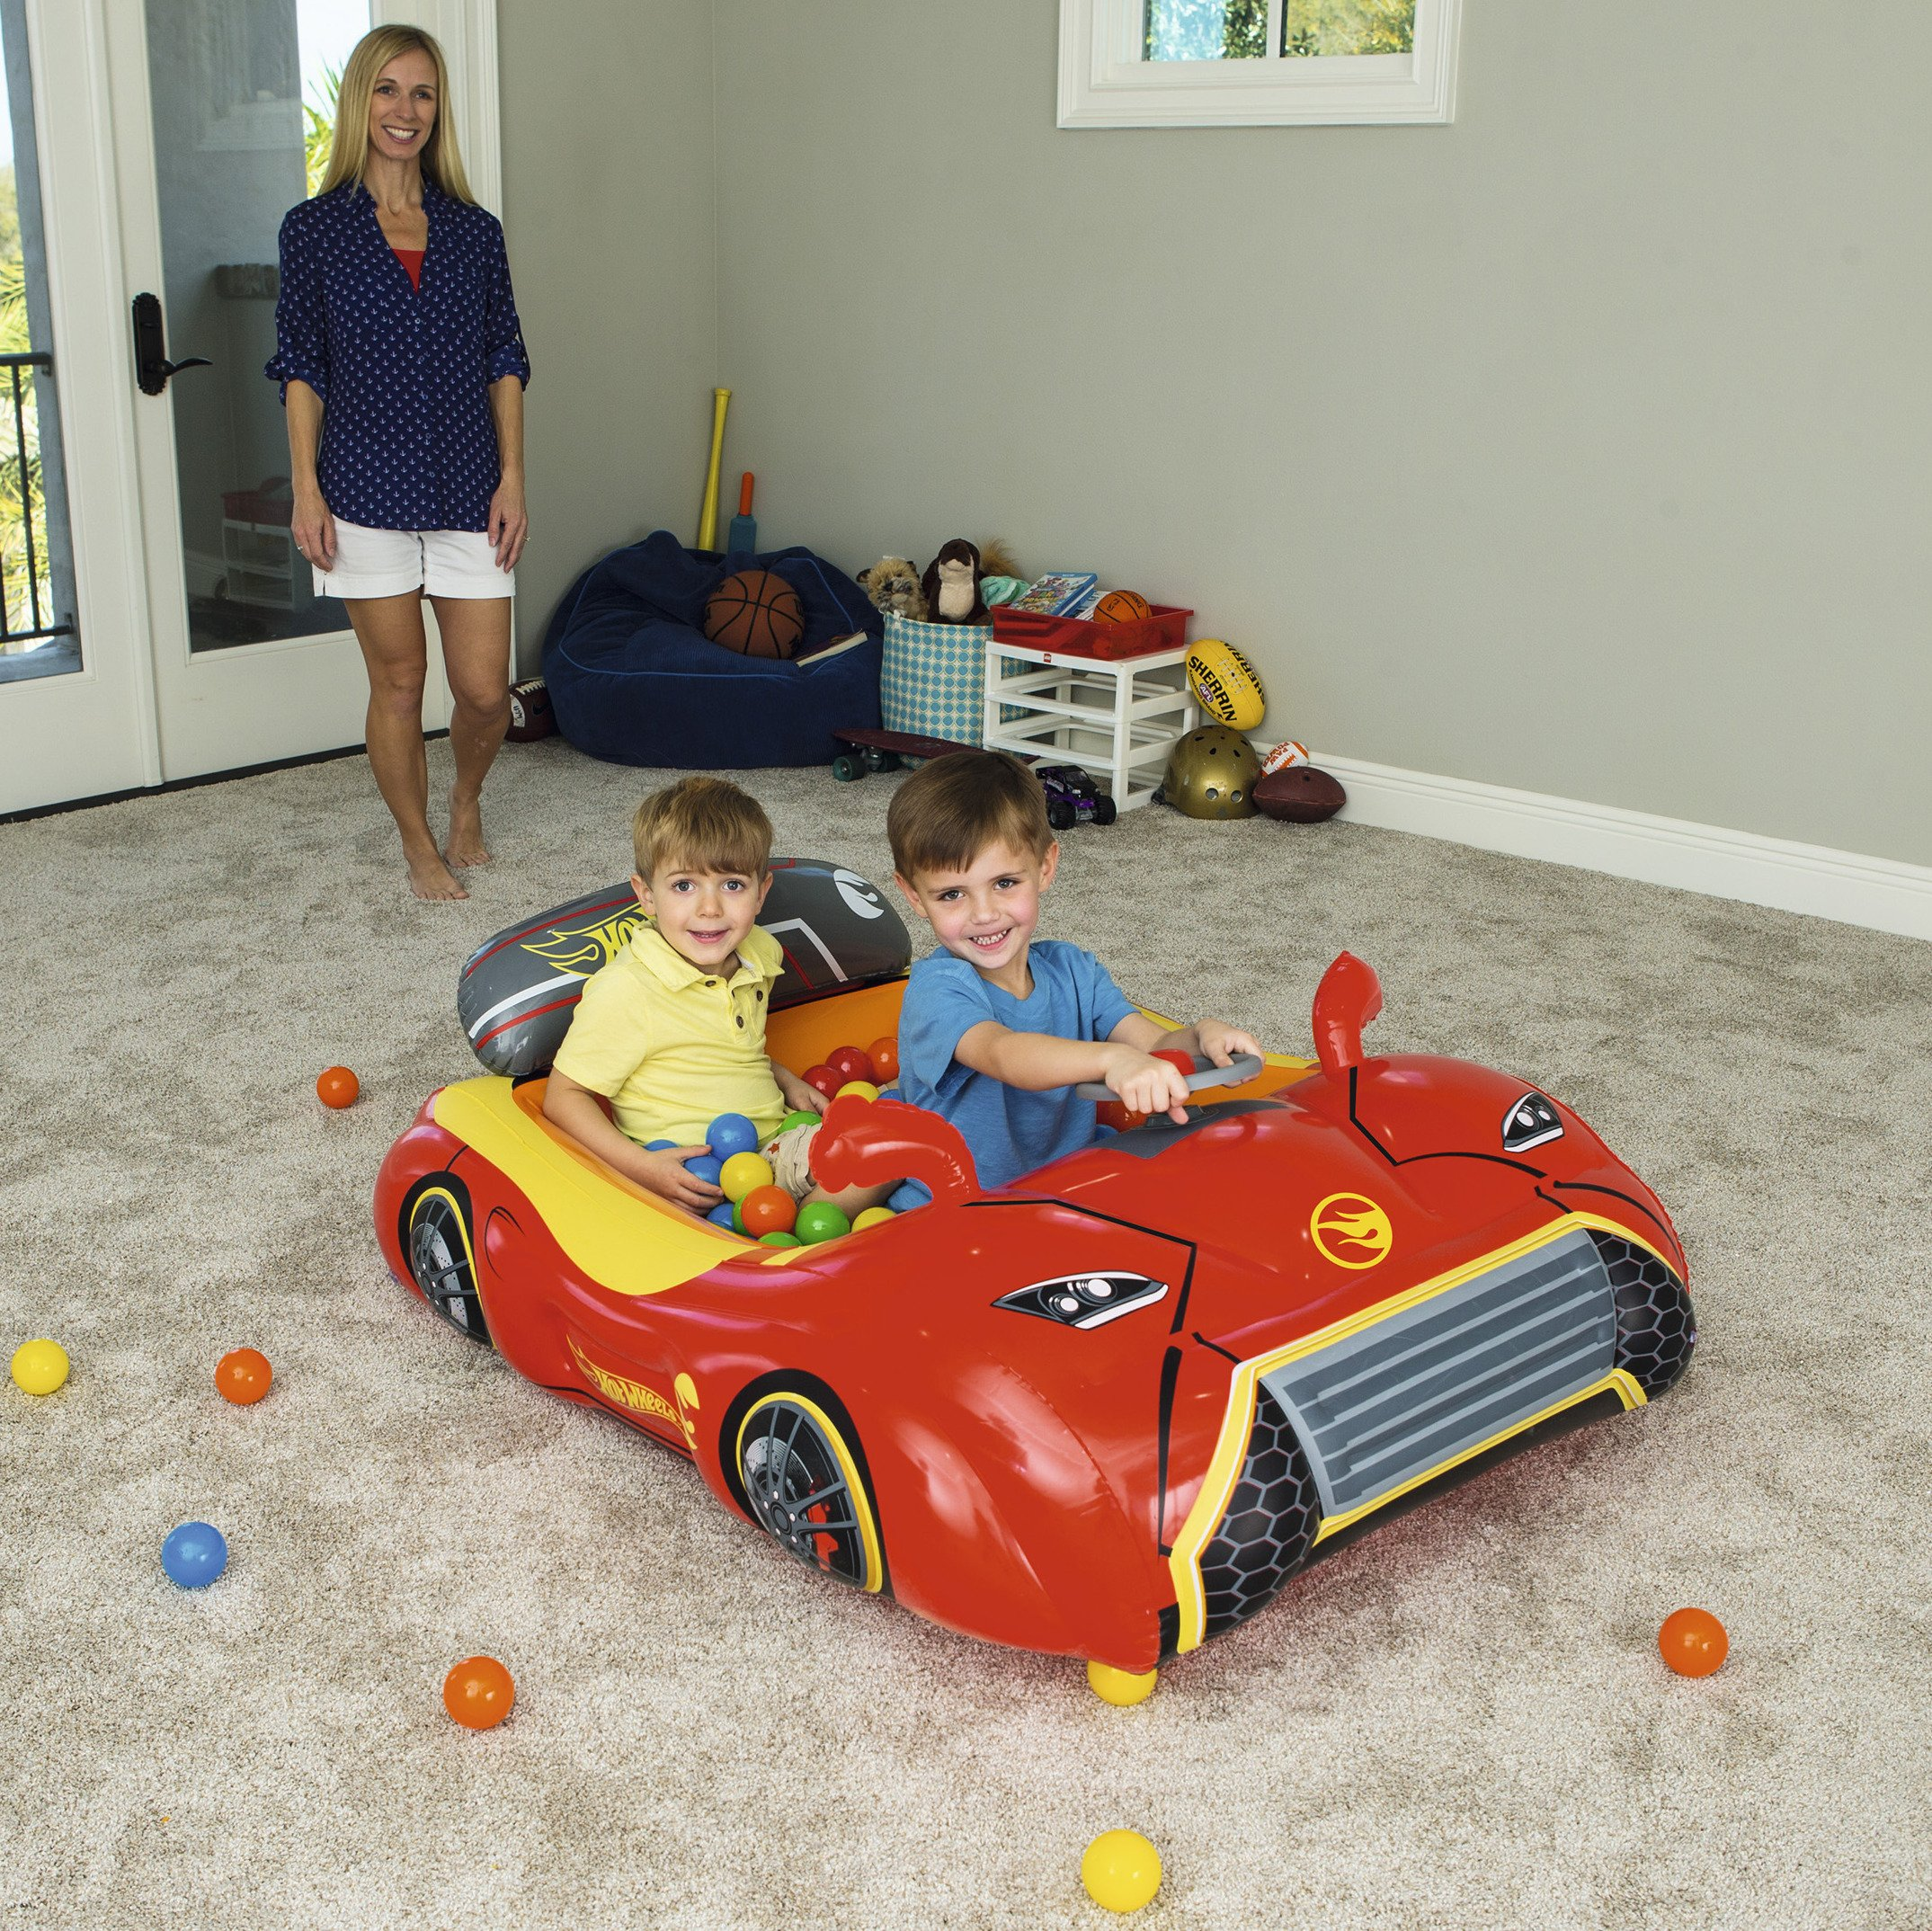 Bestway Hot Wheels Children's Inflatable Car Ball Pit, Includes 25 Balls by Bestway (Image #2)